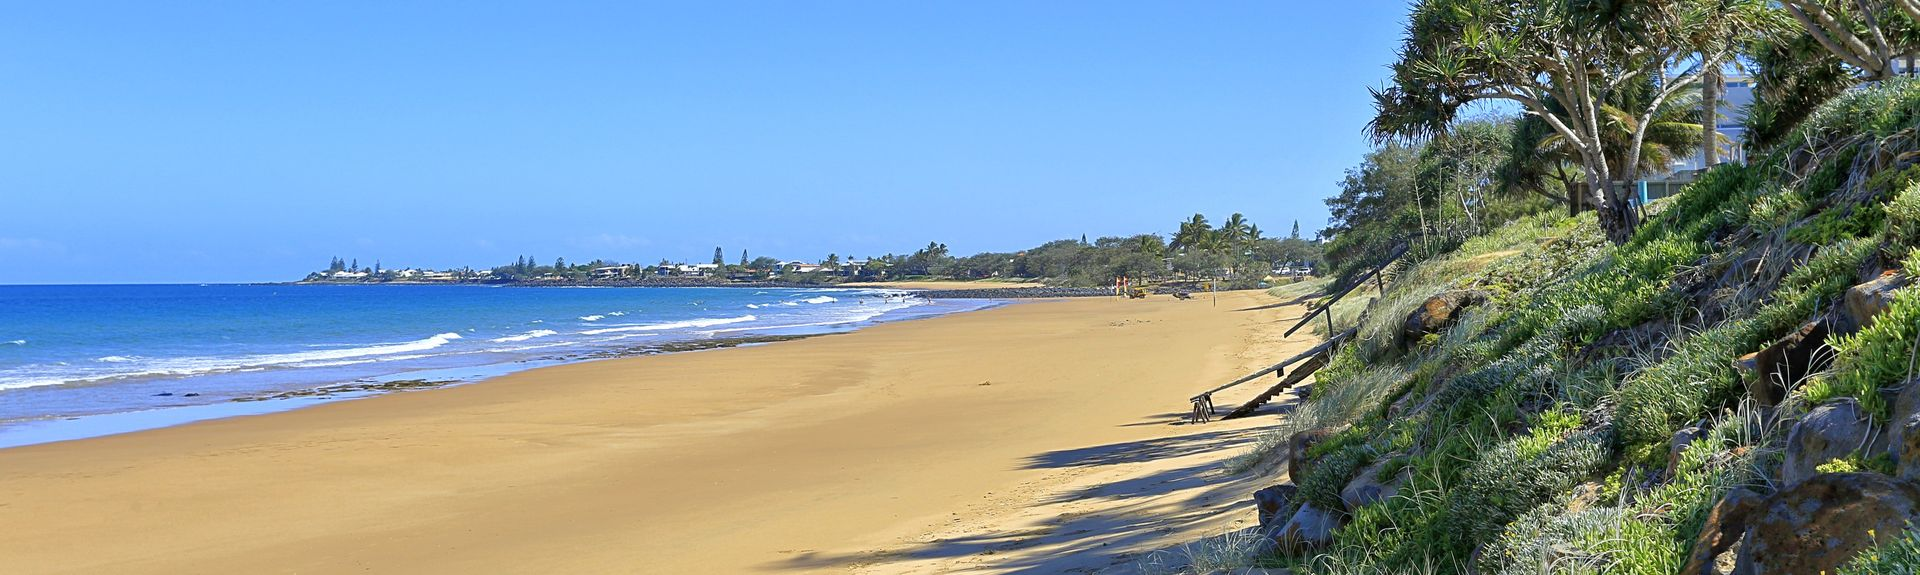 Kelly's Beach (plaża), Queensland, Australia